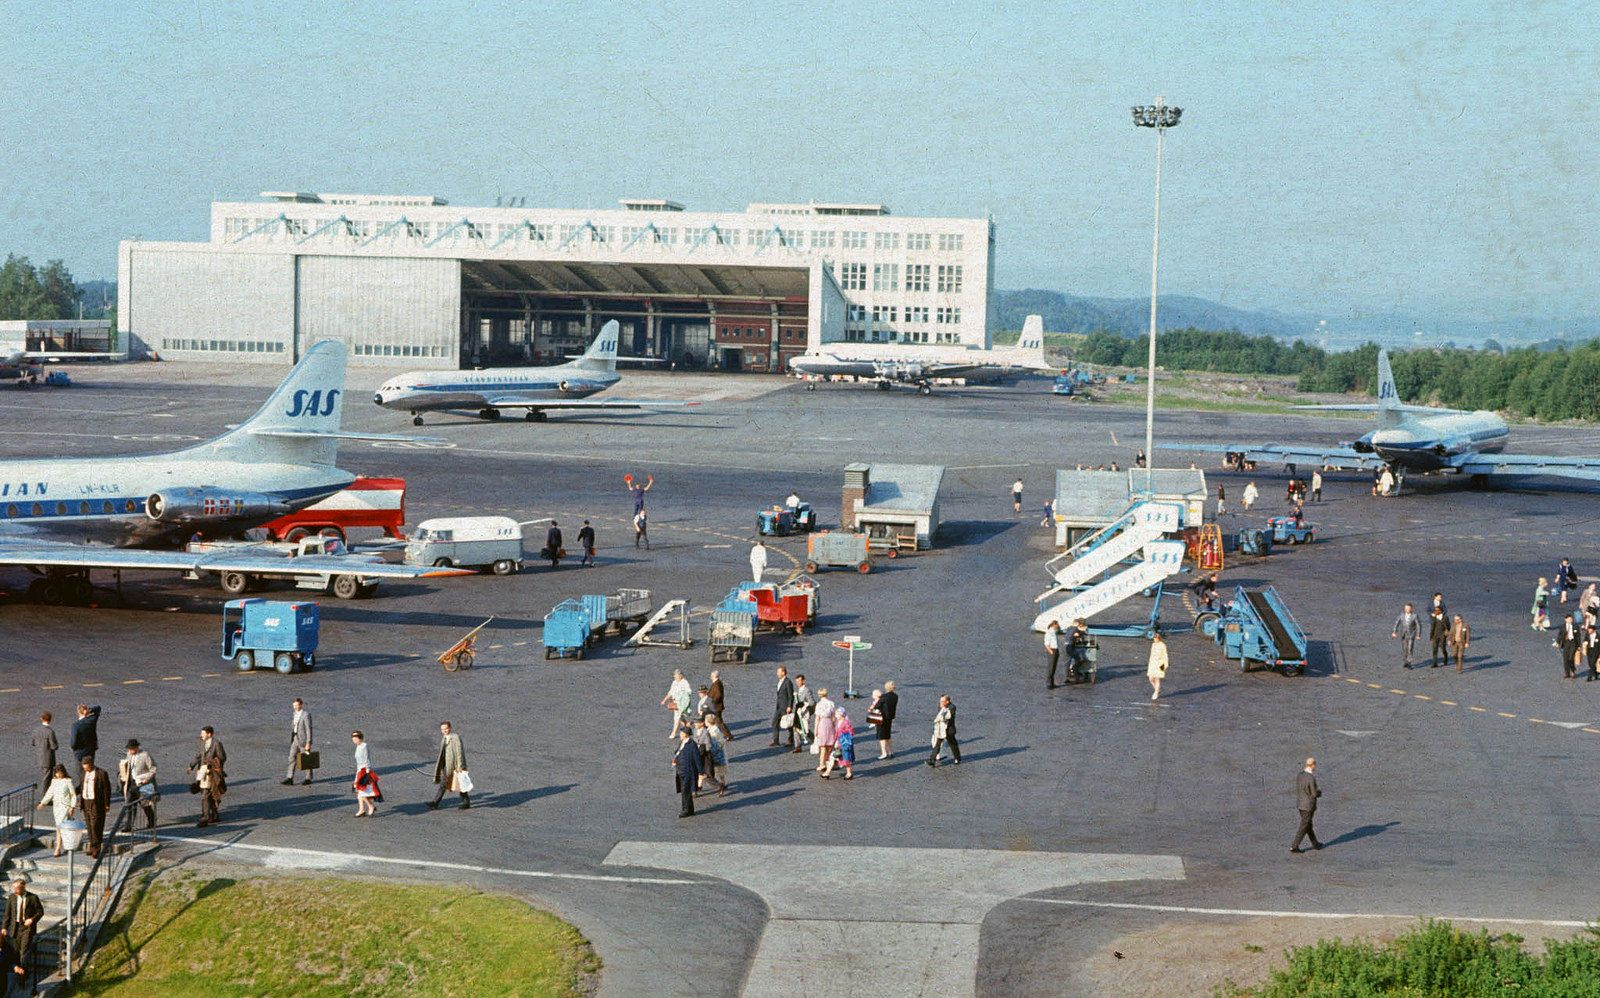 Fornebu 1967 Scandinavian Airlines System Aviation History Image